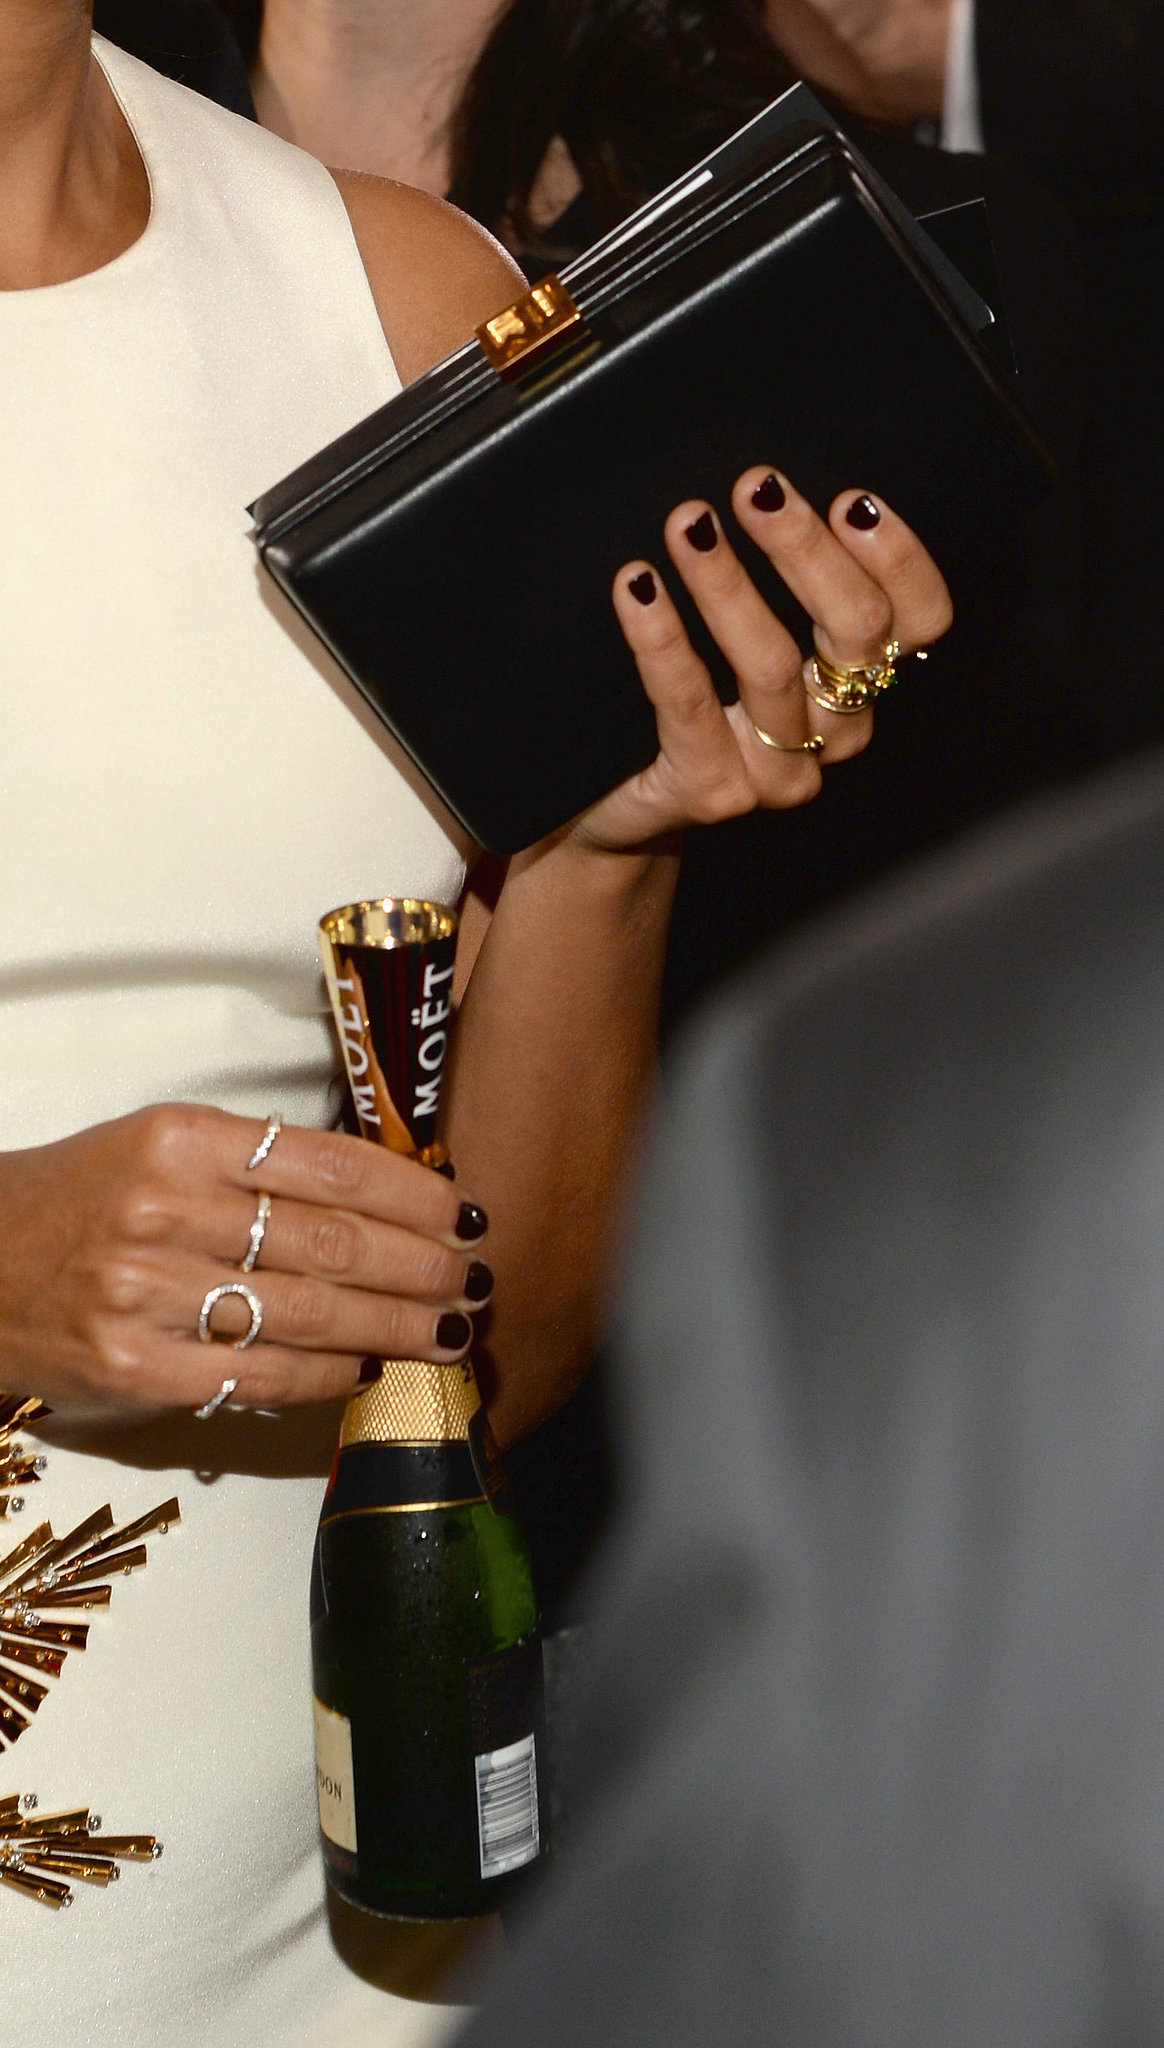 Rashida Jones knows how to accessorize — and we're not just talking about her mini bottle of Moet. The actress added an Ana Khouri gold and diamond Stem ring and black diamond triple Lucky ring, plus an elegant black clutch.